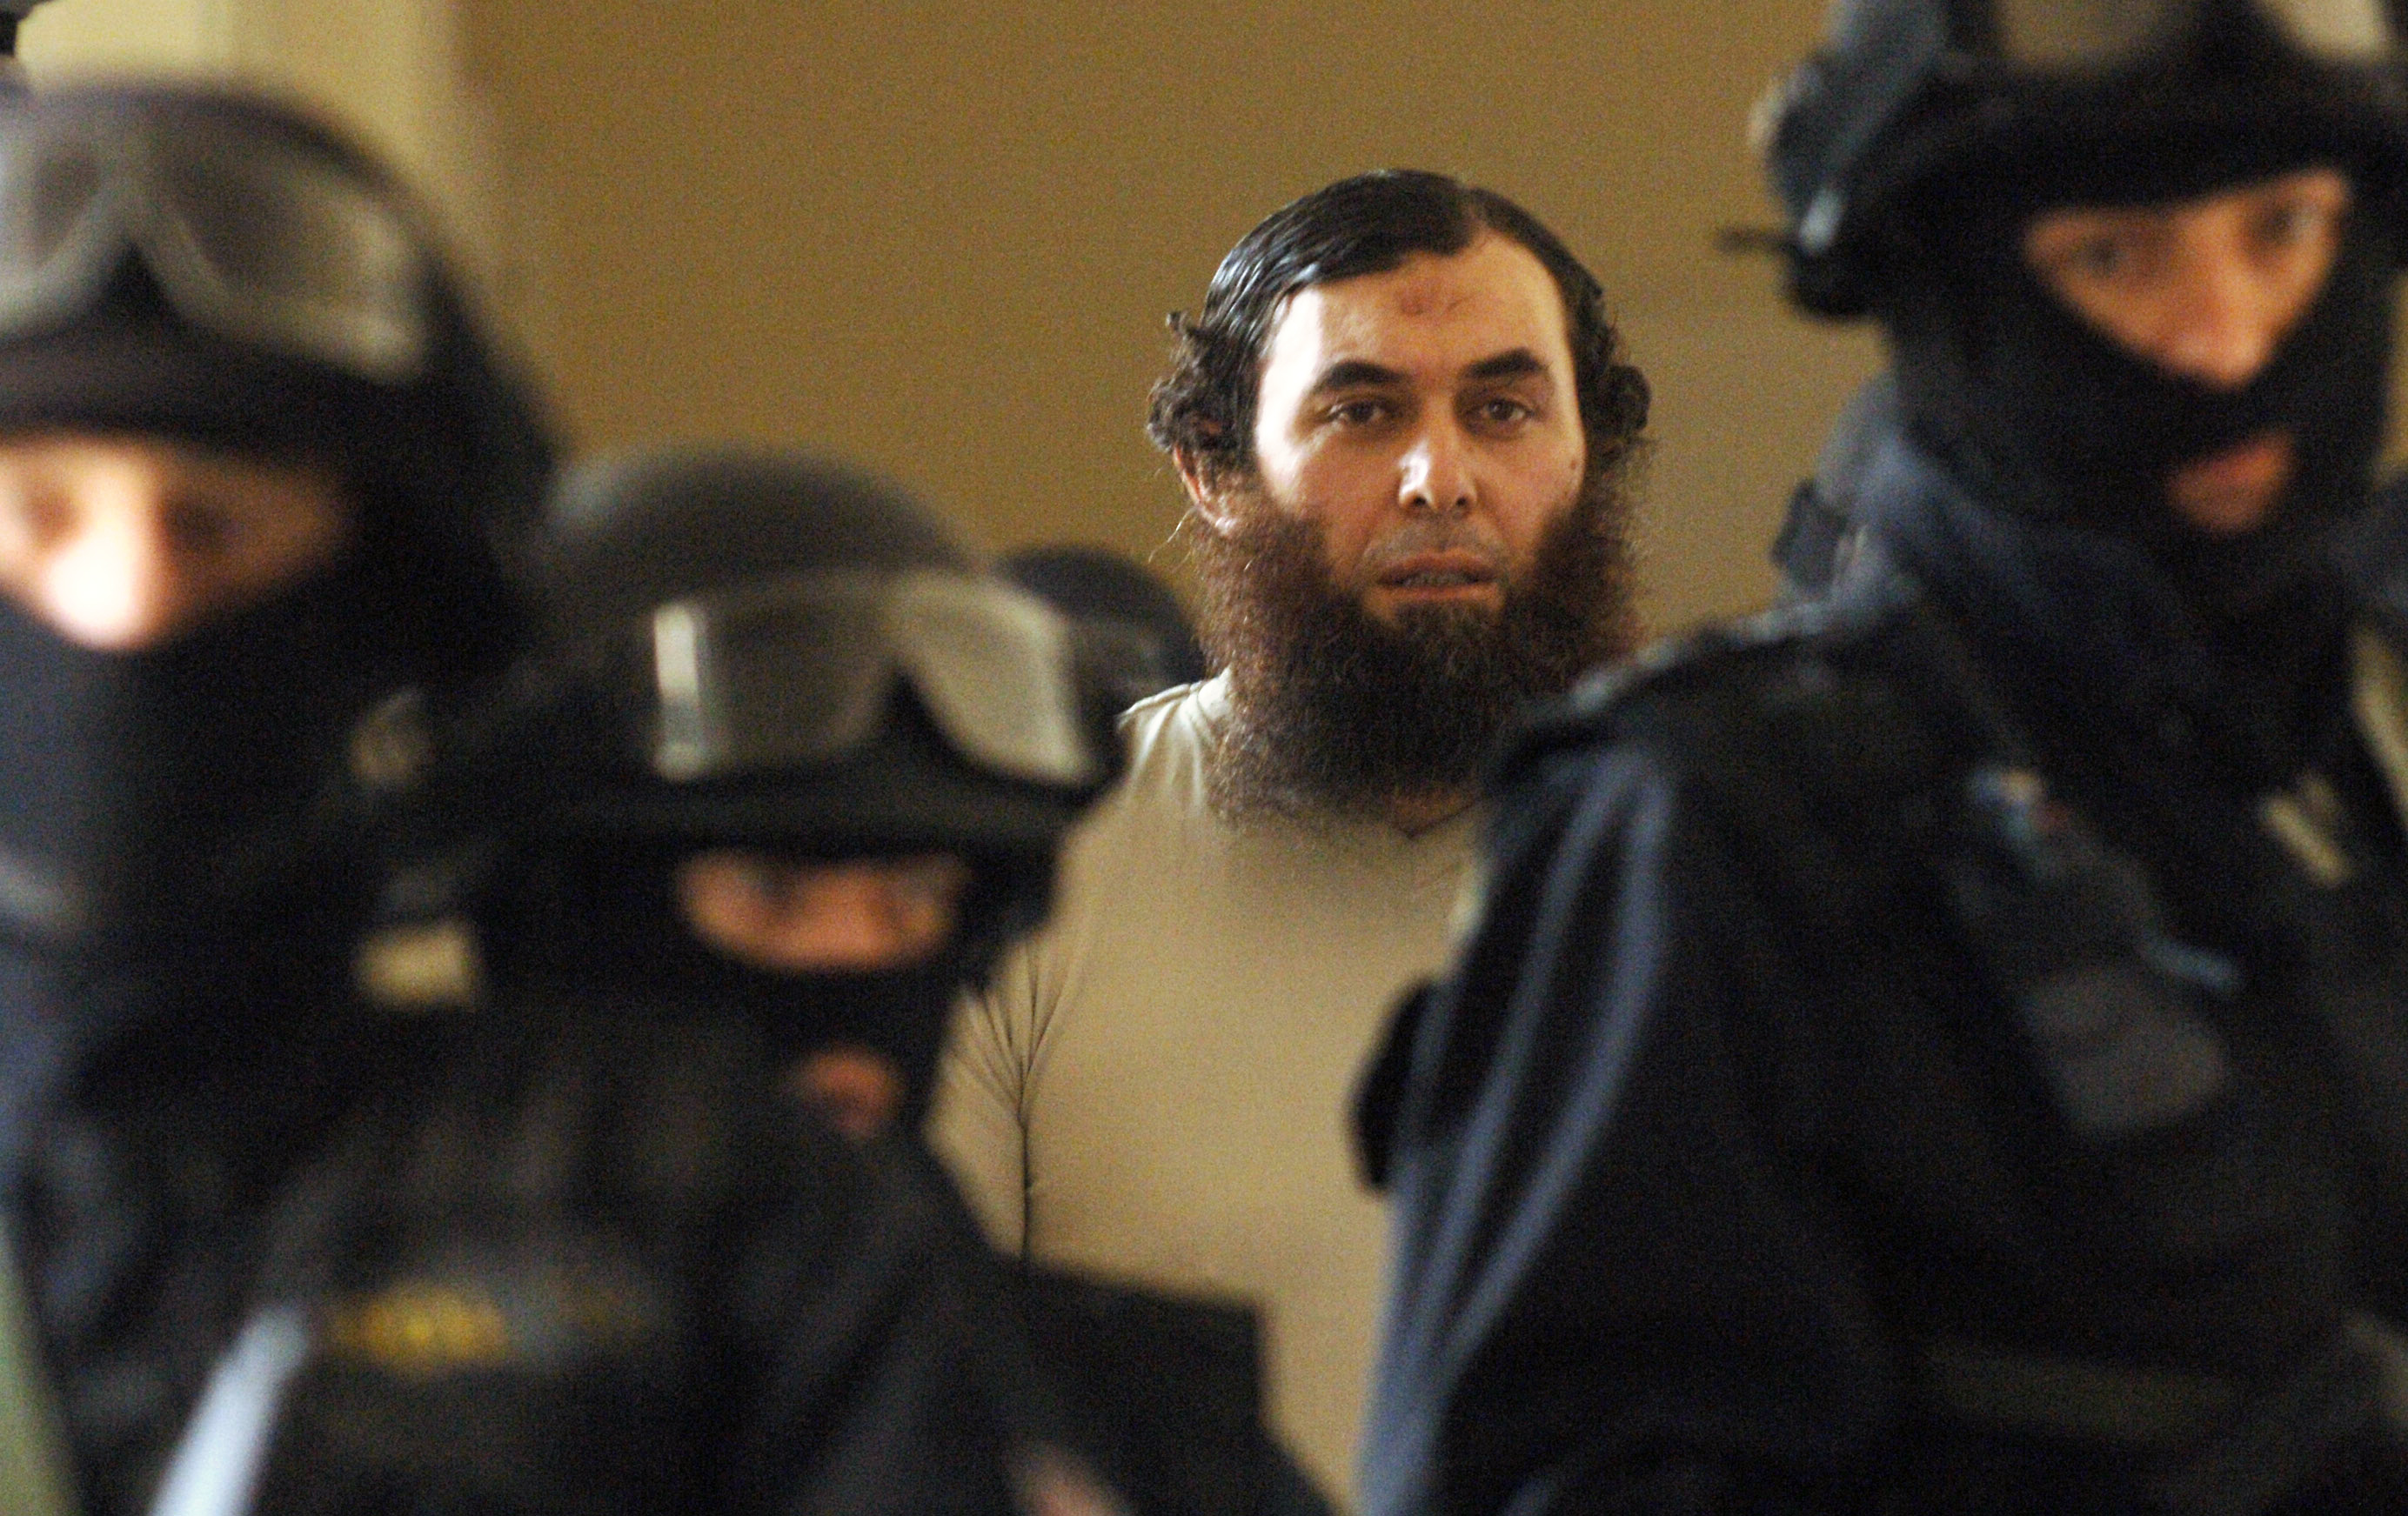 Oussama Kassir, center, Lebanese-born Swedish citizen wanted in the United States on suspicion of plotting to set up a terrorist camp there, is escorted by heavily armed policemen to the courtroom in Prague on Wednesday, April 25, 2007. The Czech court ruled today that Oussama Kassir can be extradited to the USA however he immediately appealed the decision of the Municipal Court in Prague. Kassir is charged in the USA with conspiracy aimed at providing material support to terrorists for which he faces up to a life sentence if found guilty. Kassir was arrested by the Czech police upon an international arrest warrant at Prague's Ruzyne airport during a stop-over of his plane flying from Stockholm to Beirut in December 2005. (AP Photo/CTK) ** SLOVAKIA OUT **